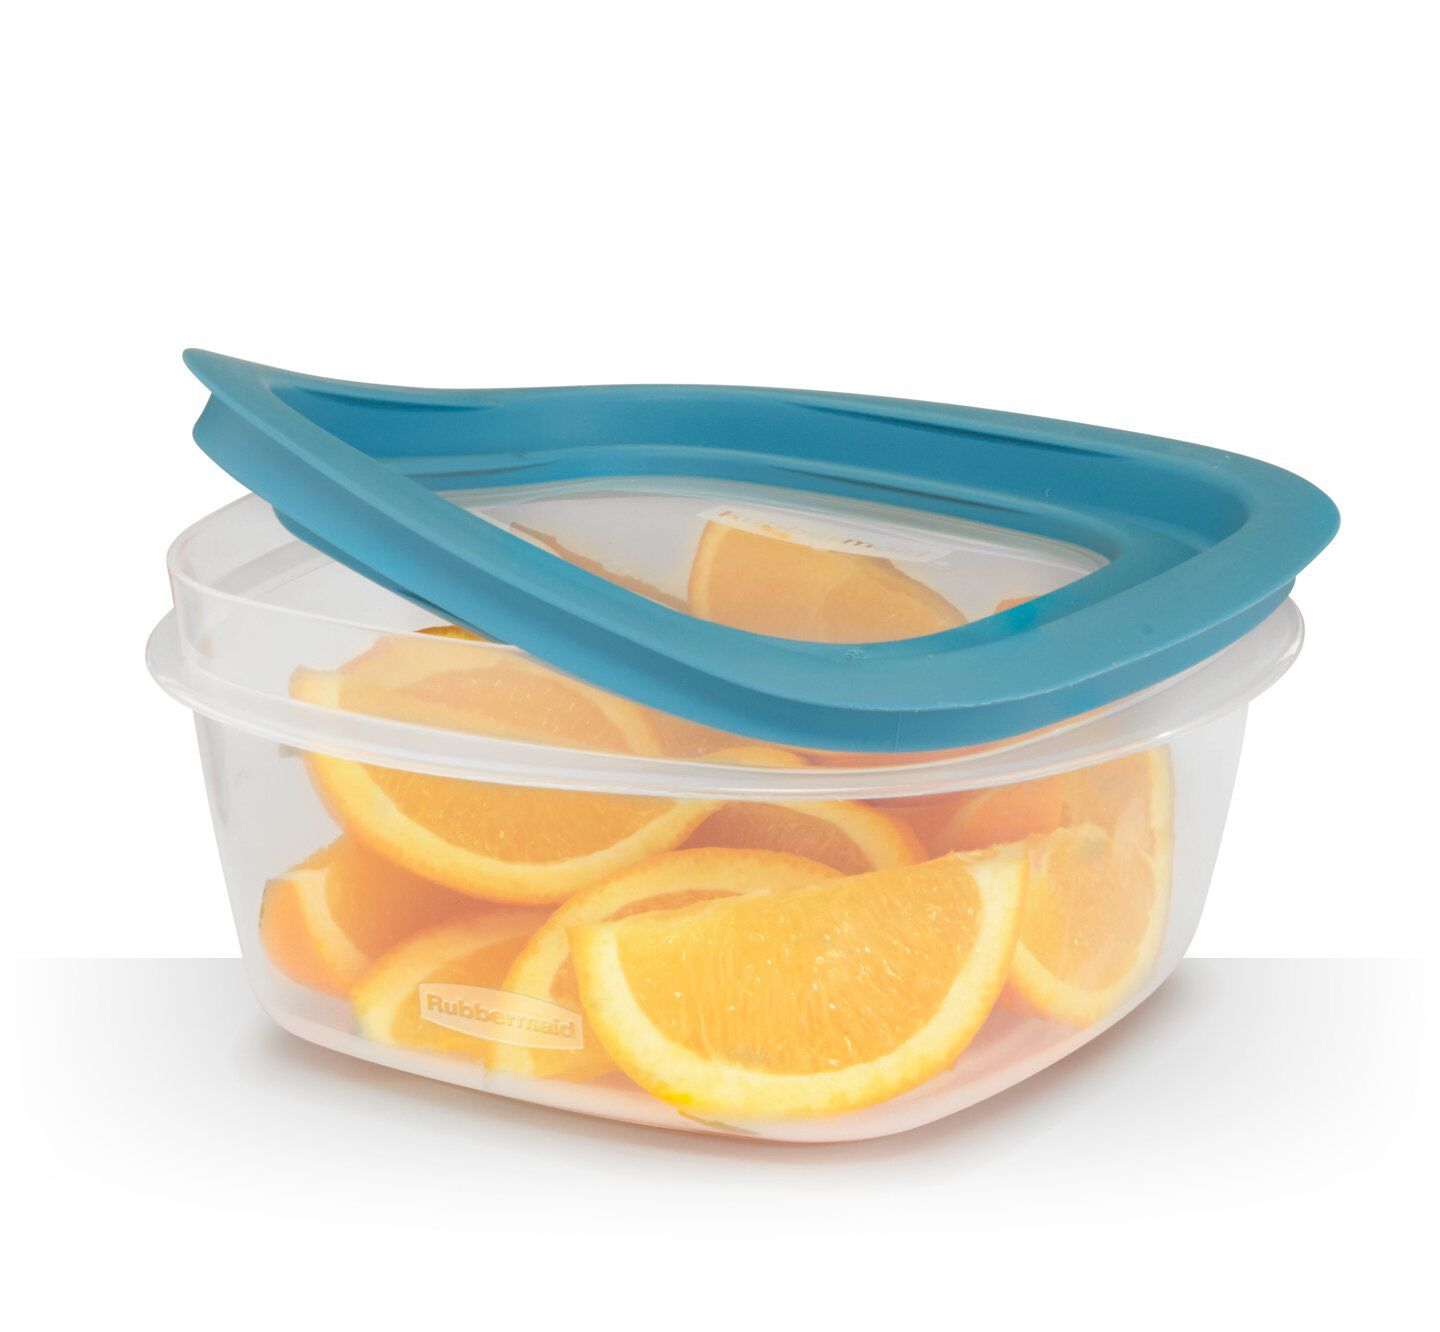 Rubbermaid flex & seal easy find lids food storage container